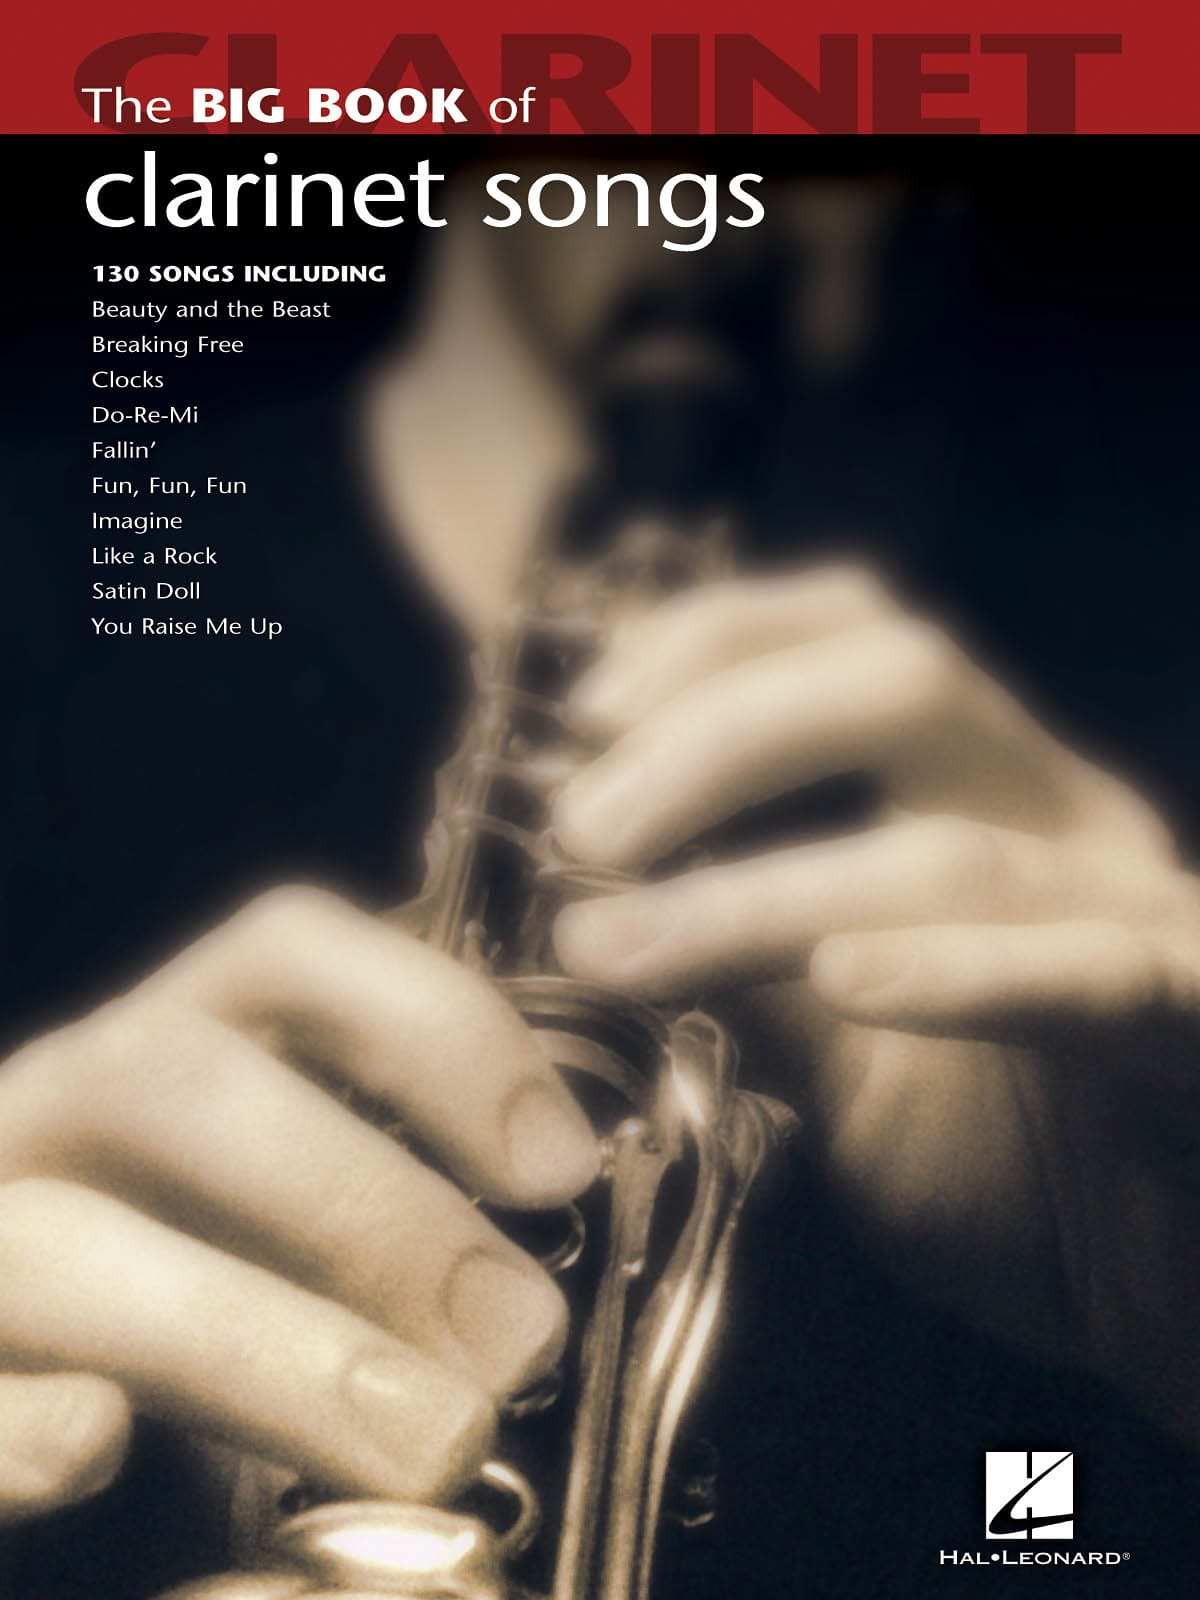 The Big Book of Clarinet Songs - Partition - laflutedepan.com